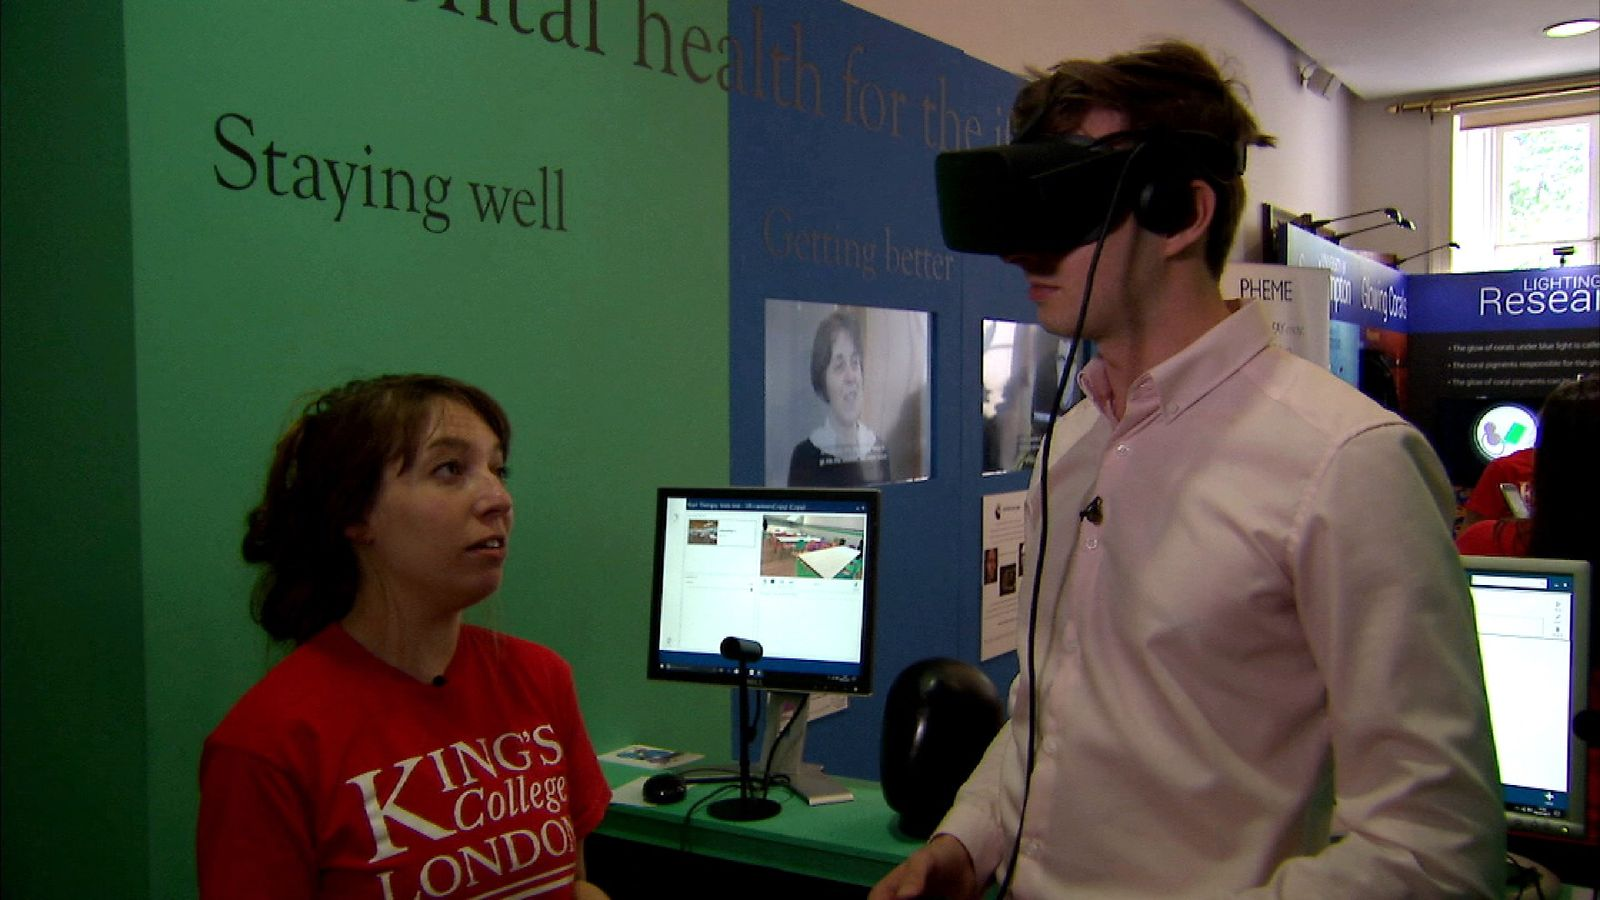 Virtual reality tech to help with anxiety